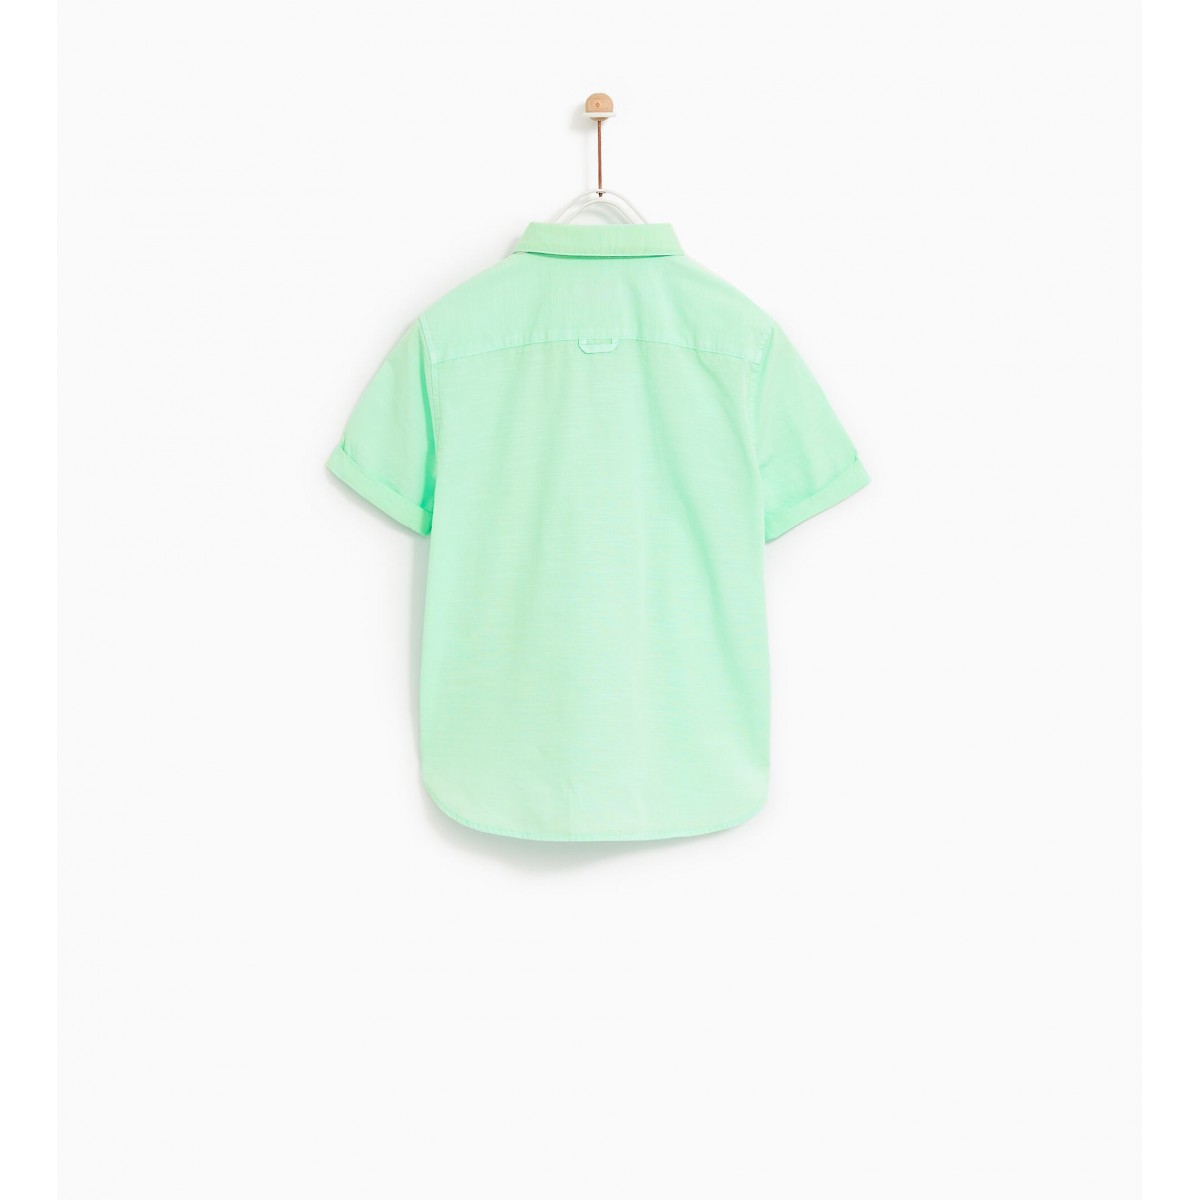 Zara Short Sleeve Shirt